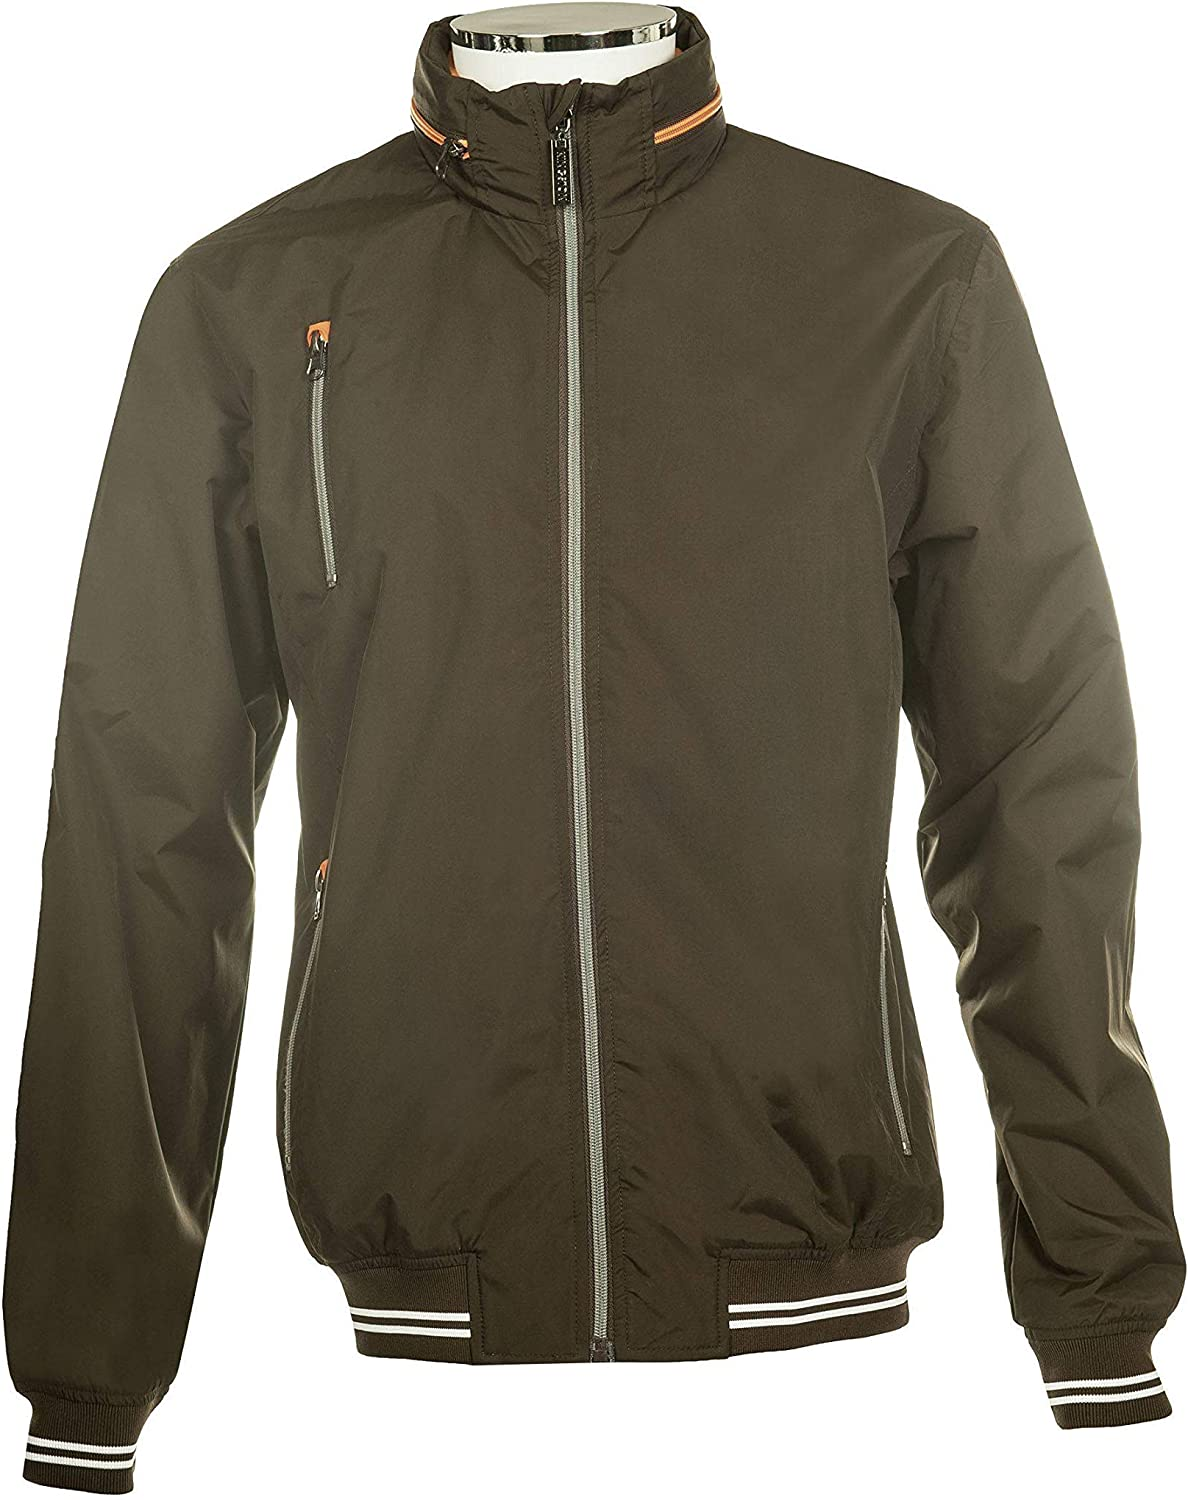 HKM HKM HKM Sports Equipment Kingston Reitjacke -San Francisco-, Dunkelbraun, XXXL B01G5DBTBE  Bevorzugtes Material ebdf6d